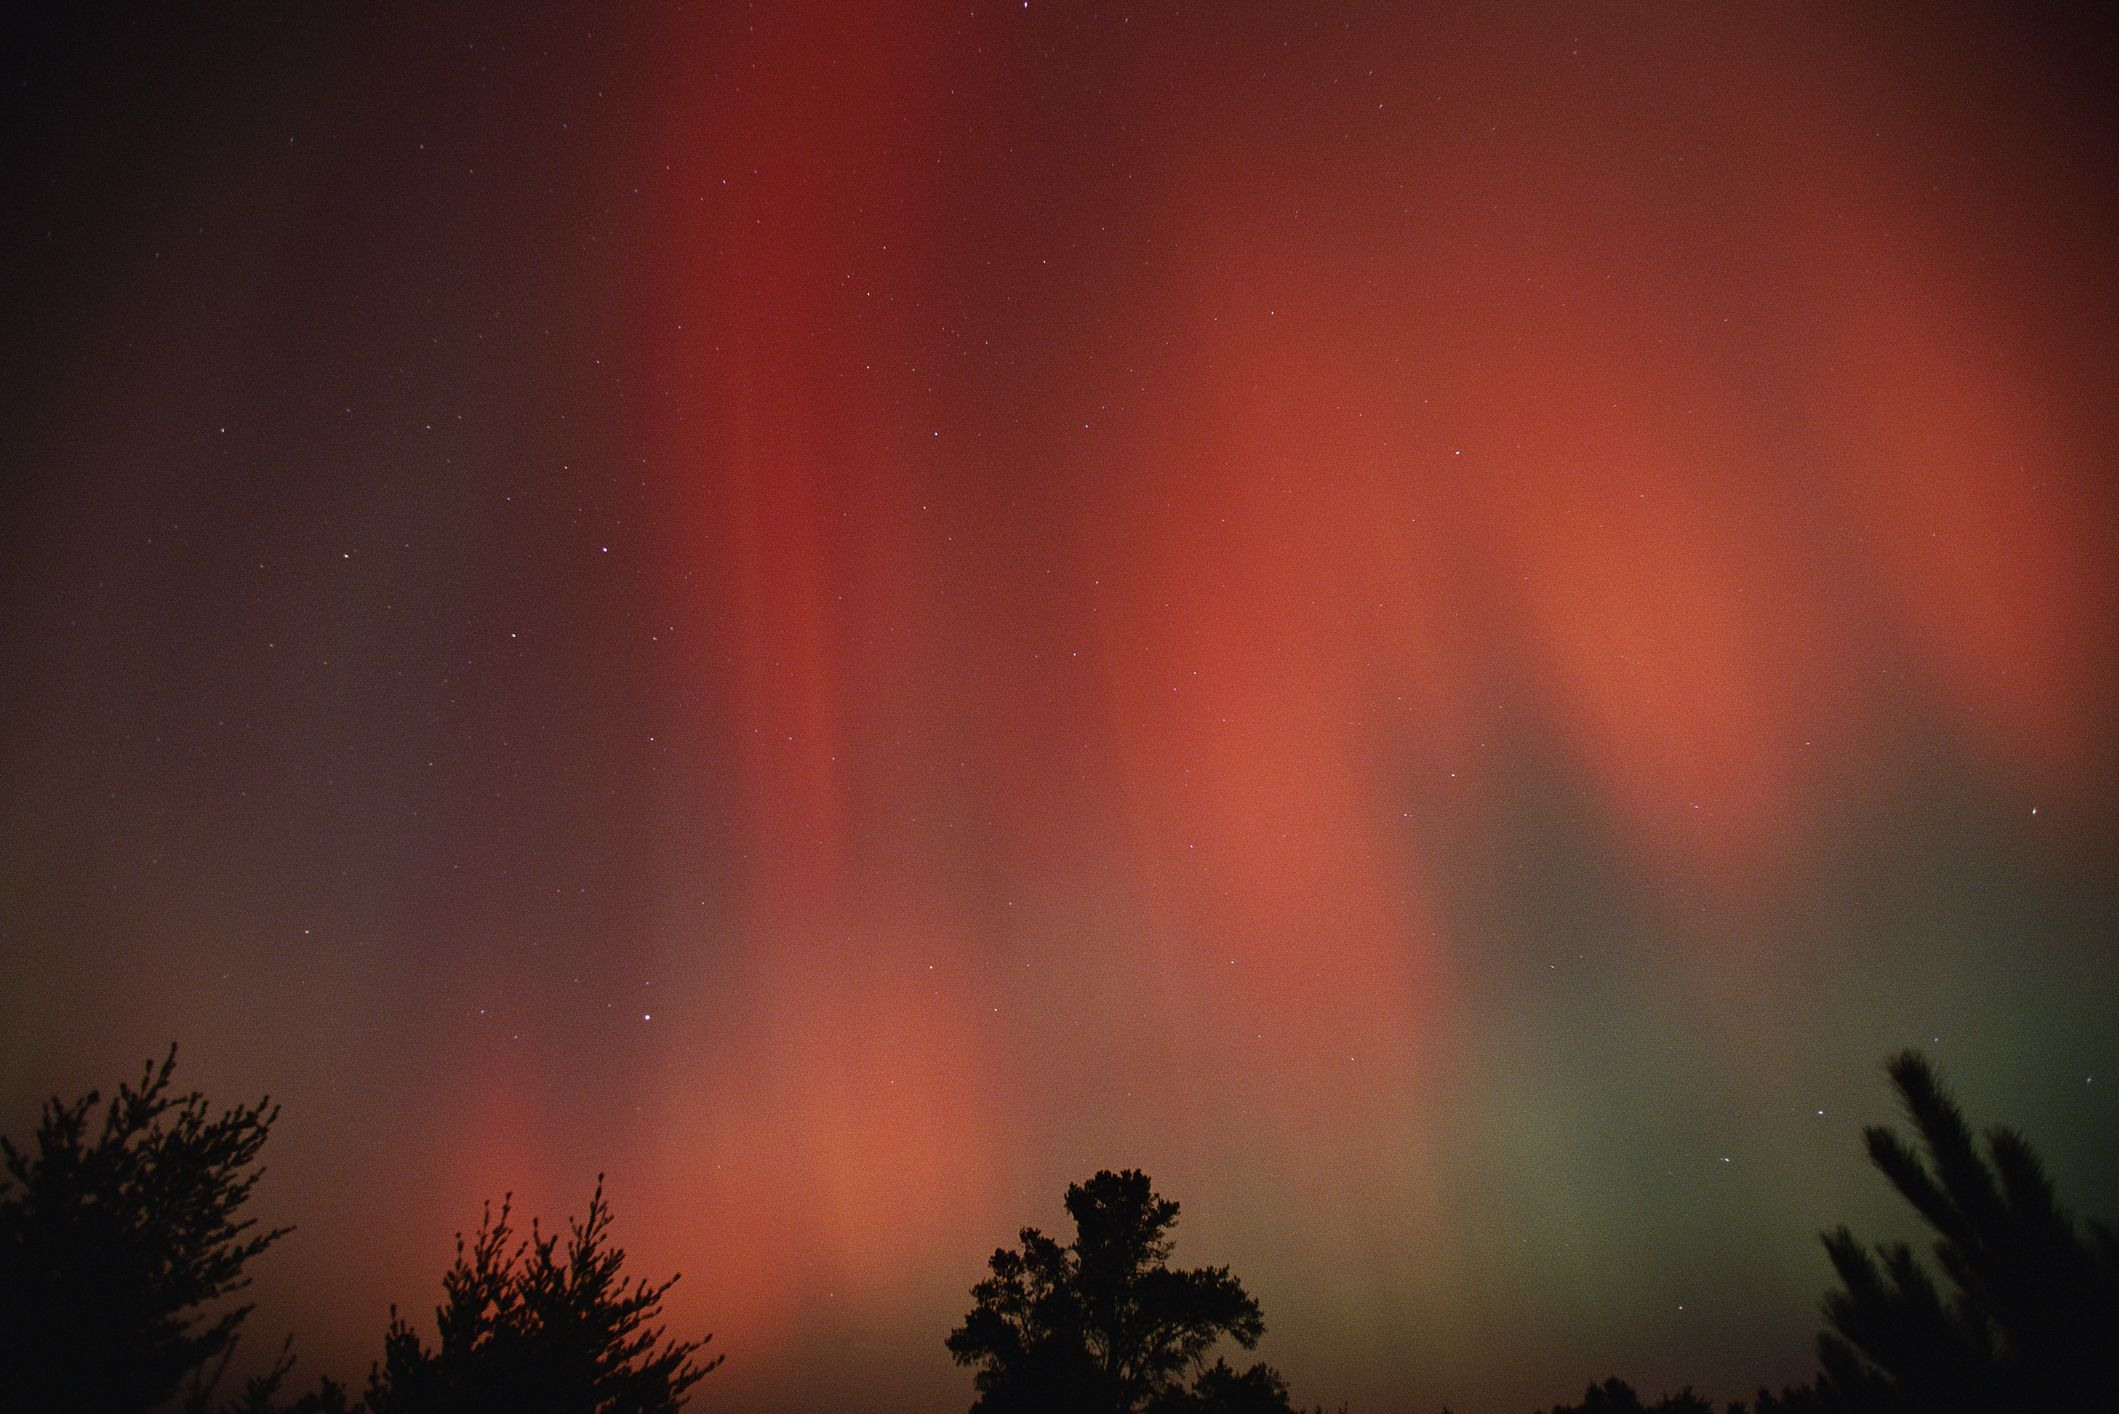 The 1,400-Year-Old Red Aurora Mystery Has Finally Been Solved